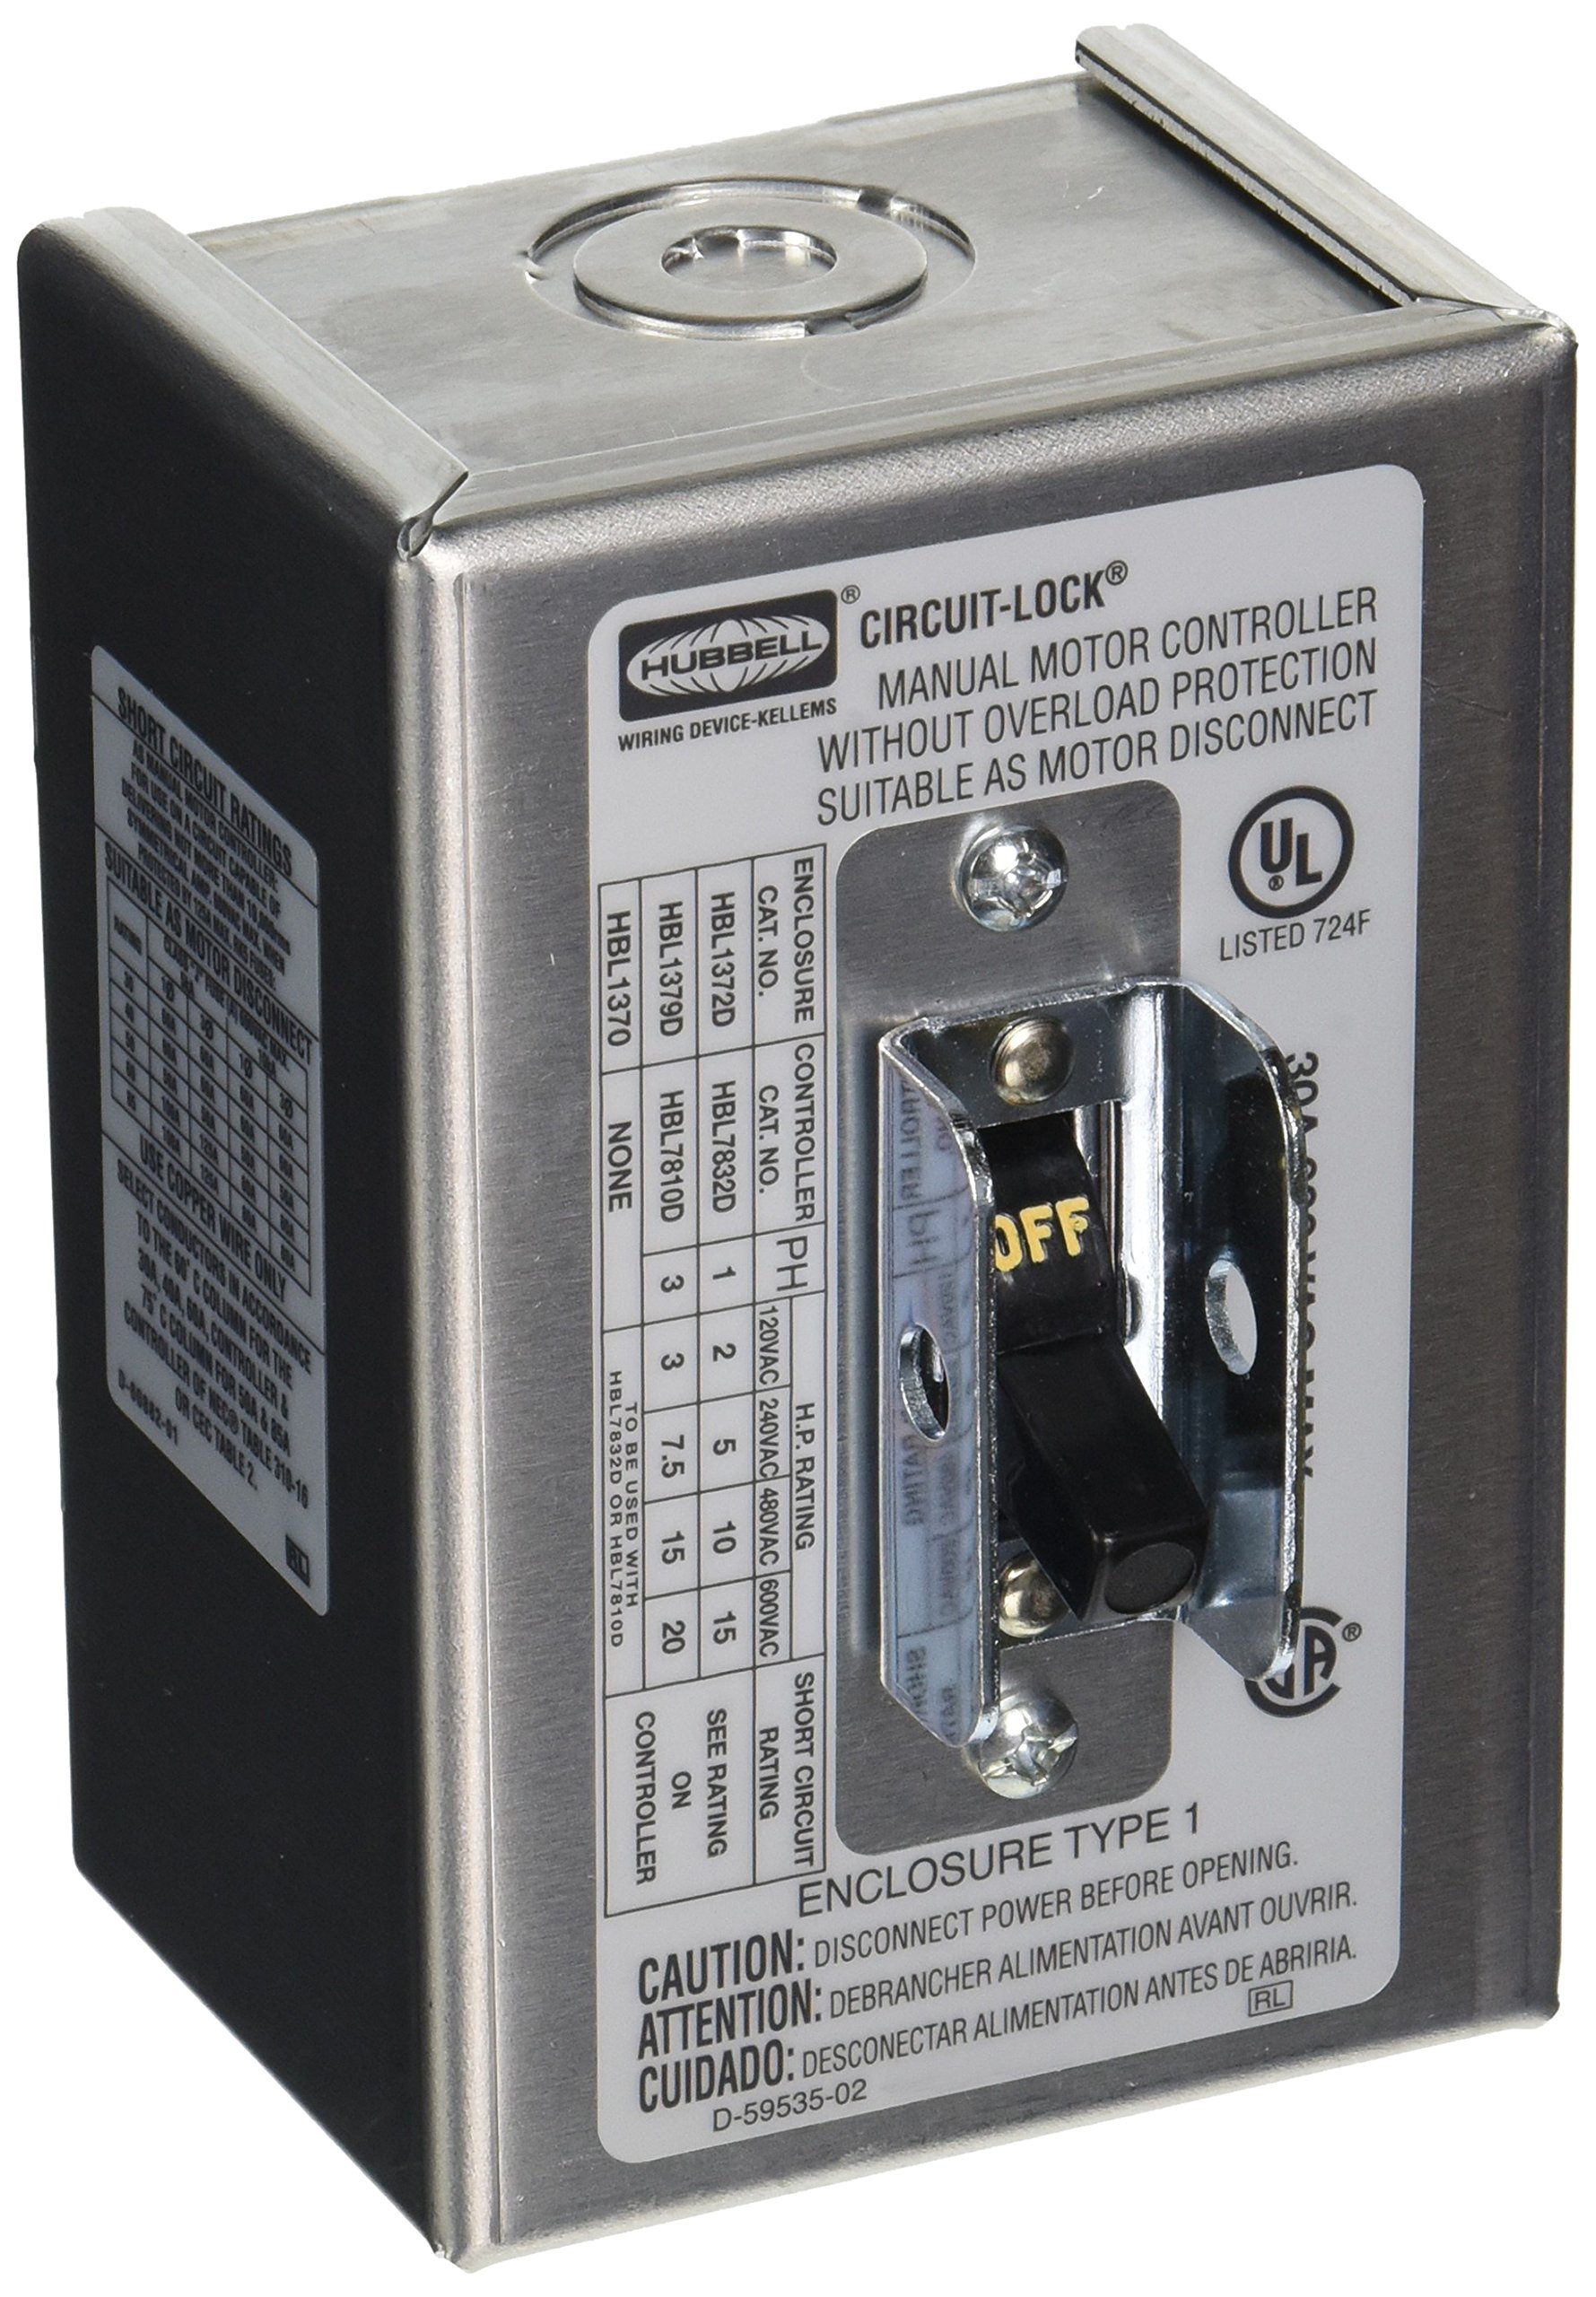 Hubbell HBL1372D2 Pole Disconnect Switch with NEMA 1 Enclosure, 30 amp, 600V